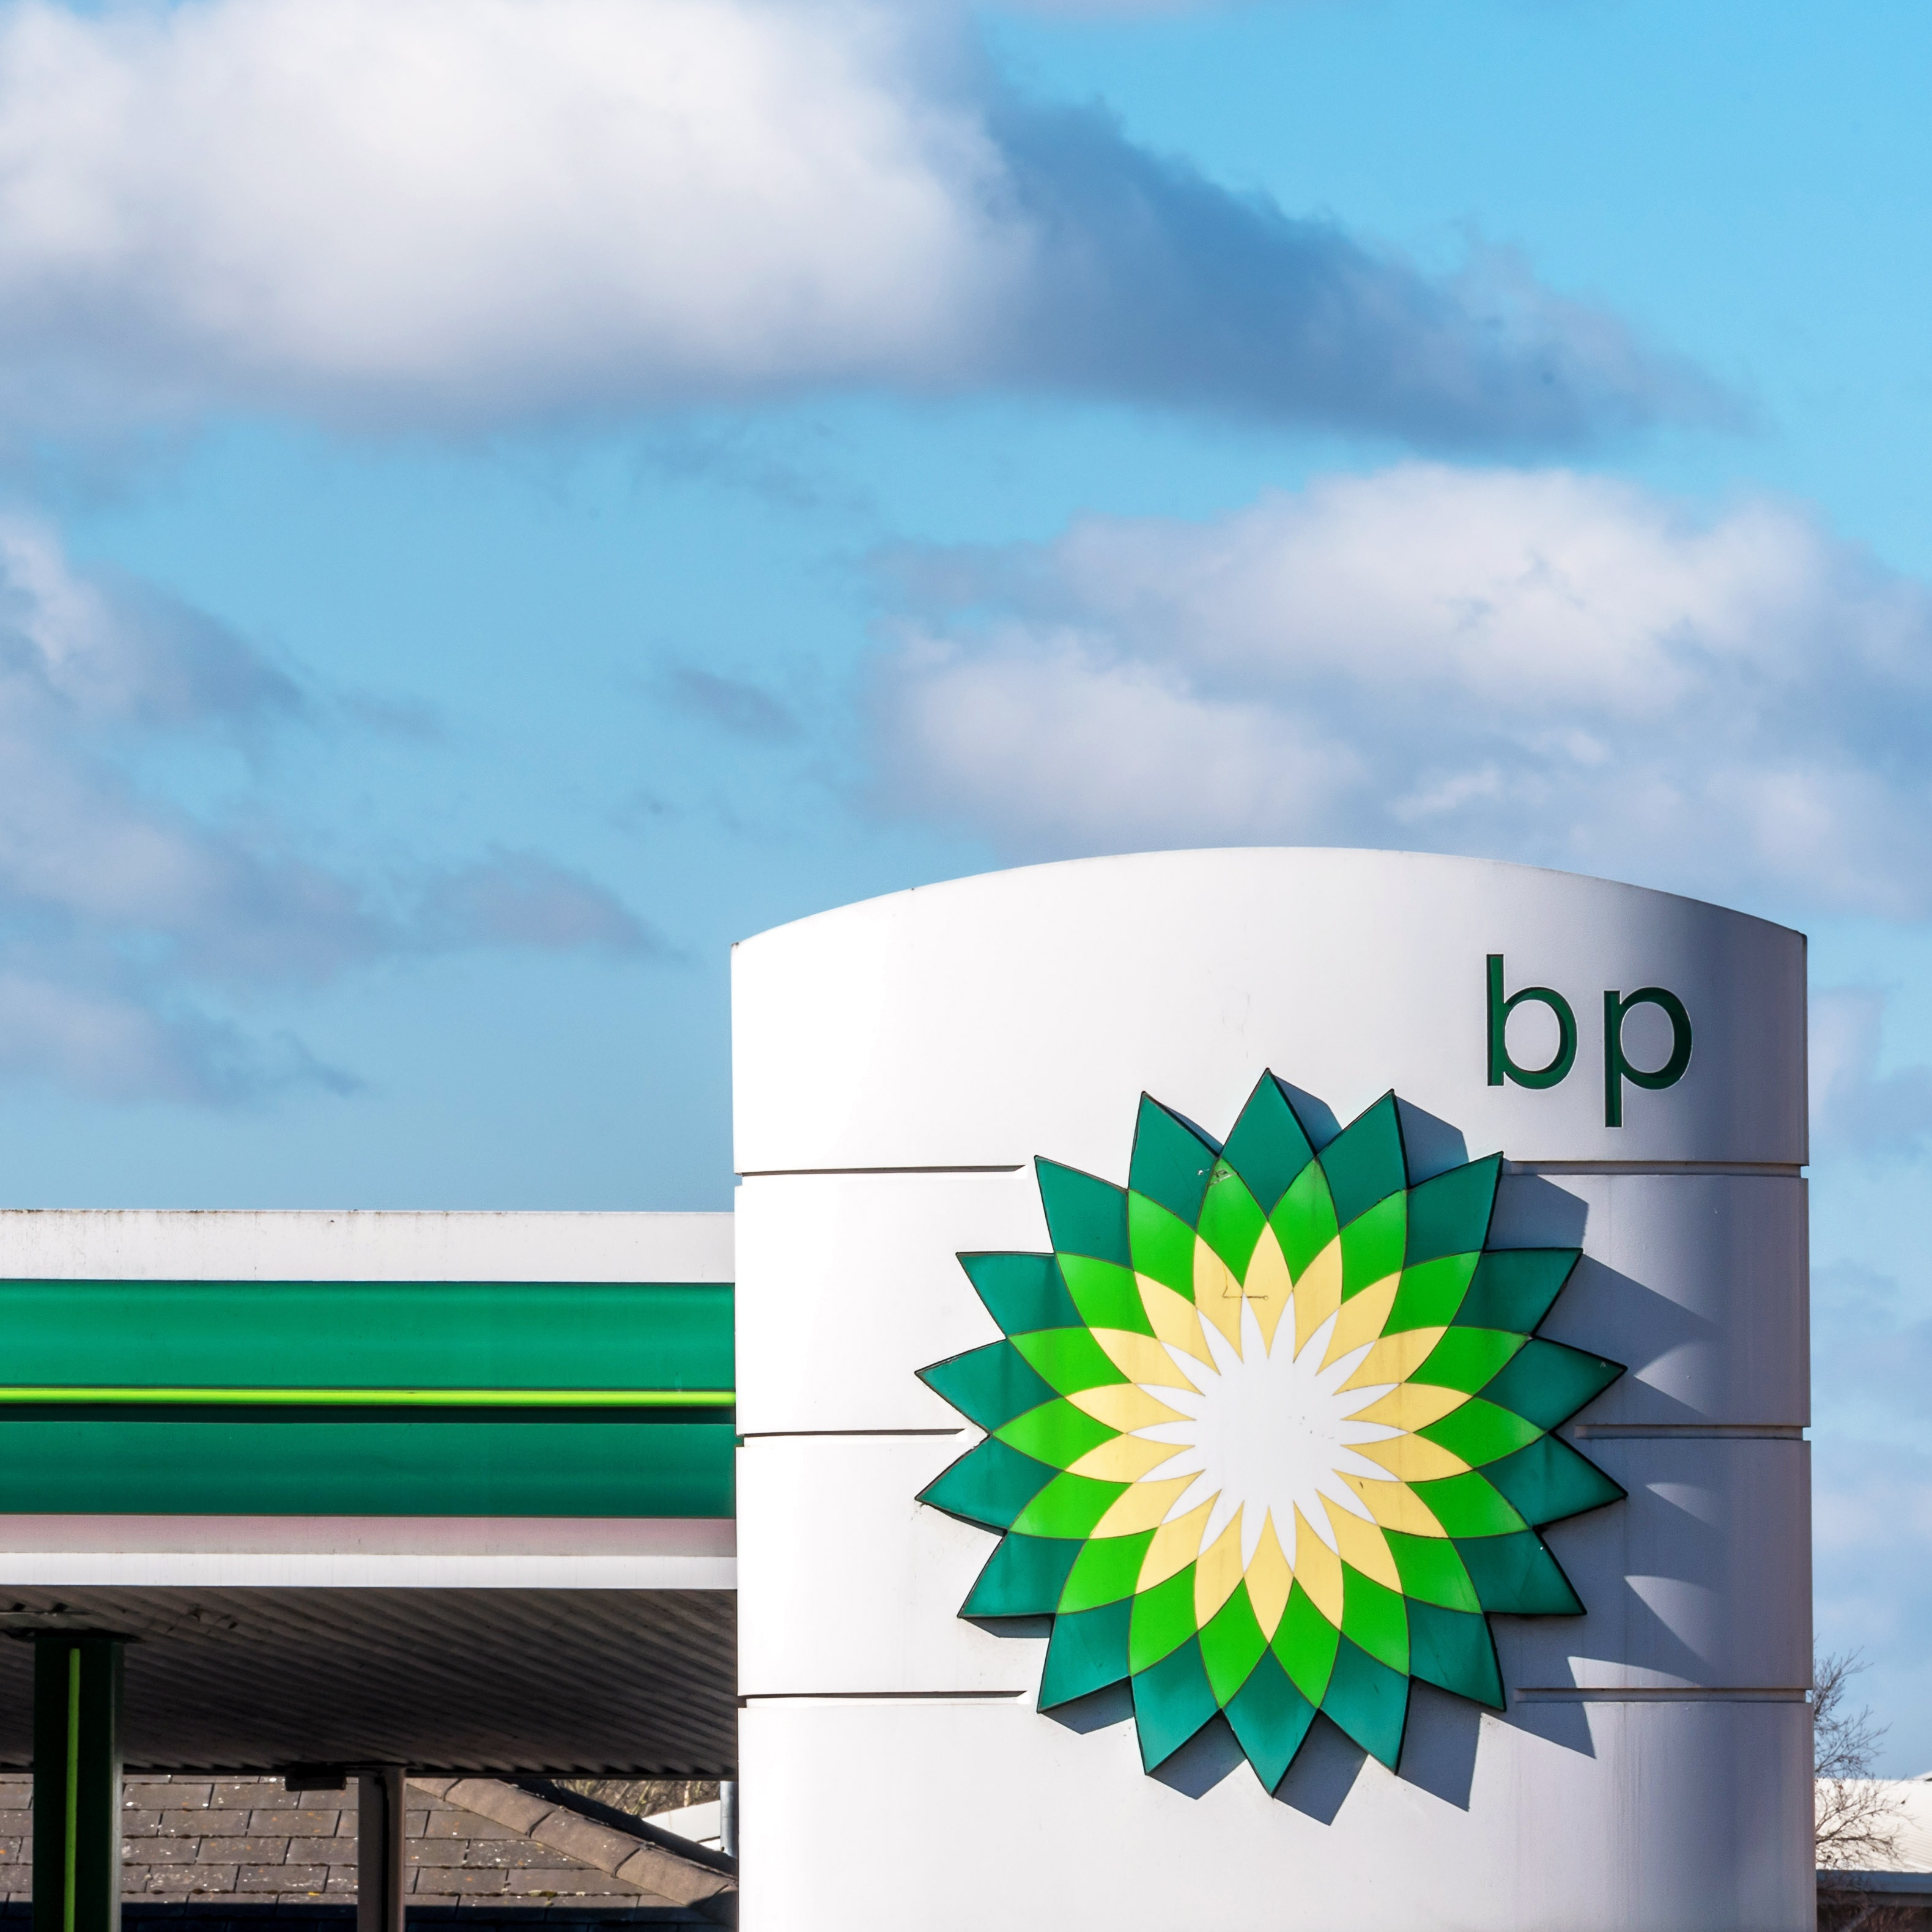 Hundreds of BP customers to have £2,000 prize 'win' honoured after competition gaffe - but you need to claim it